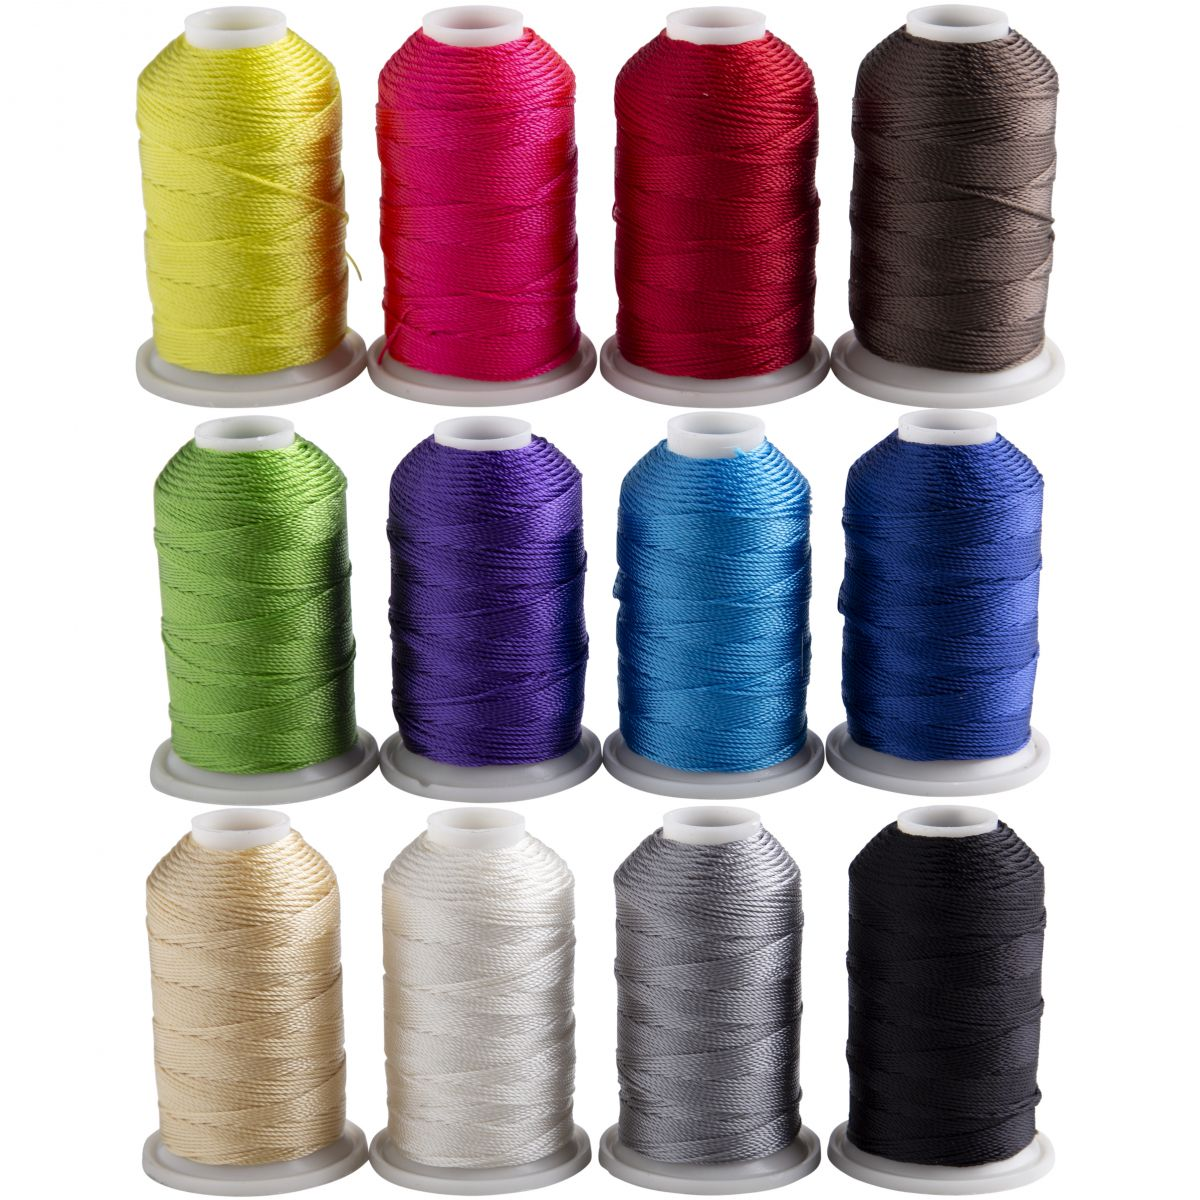 TandyPro® 1 oz Spool Thread - Bright Colors 12 Pack